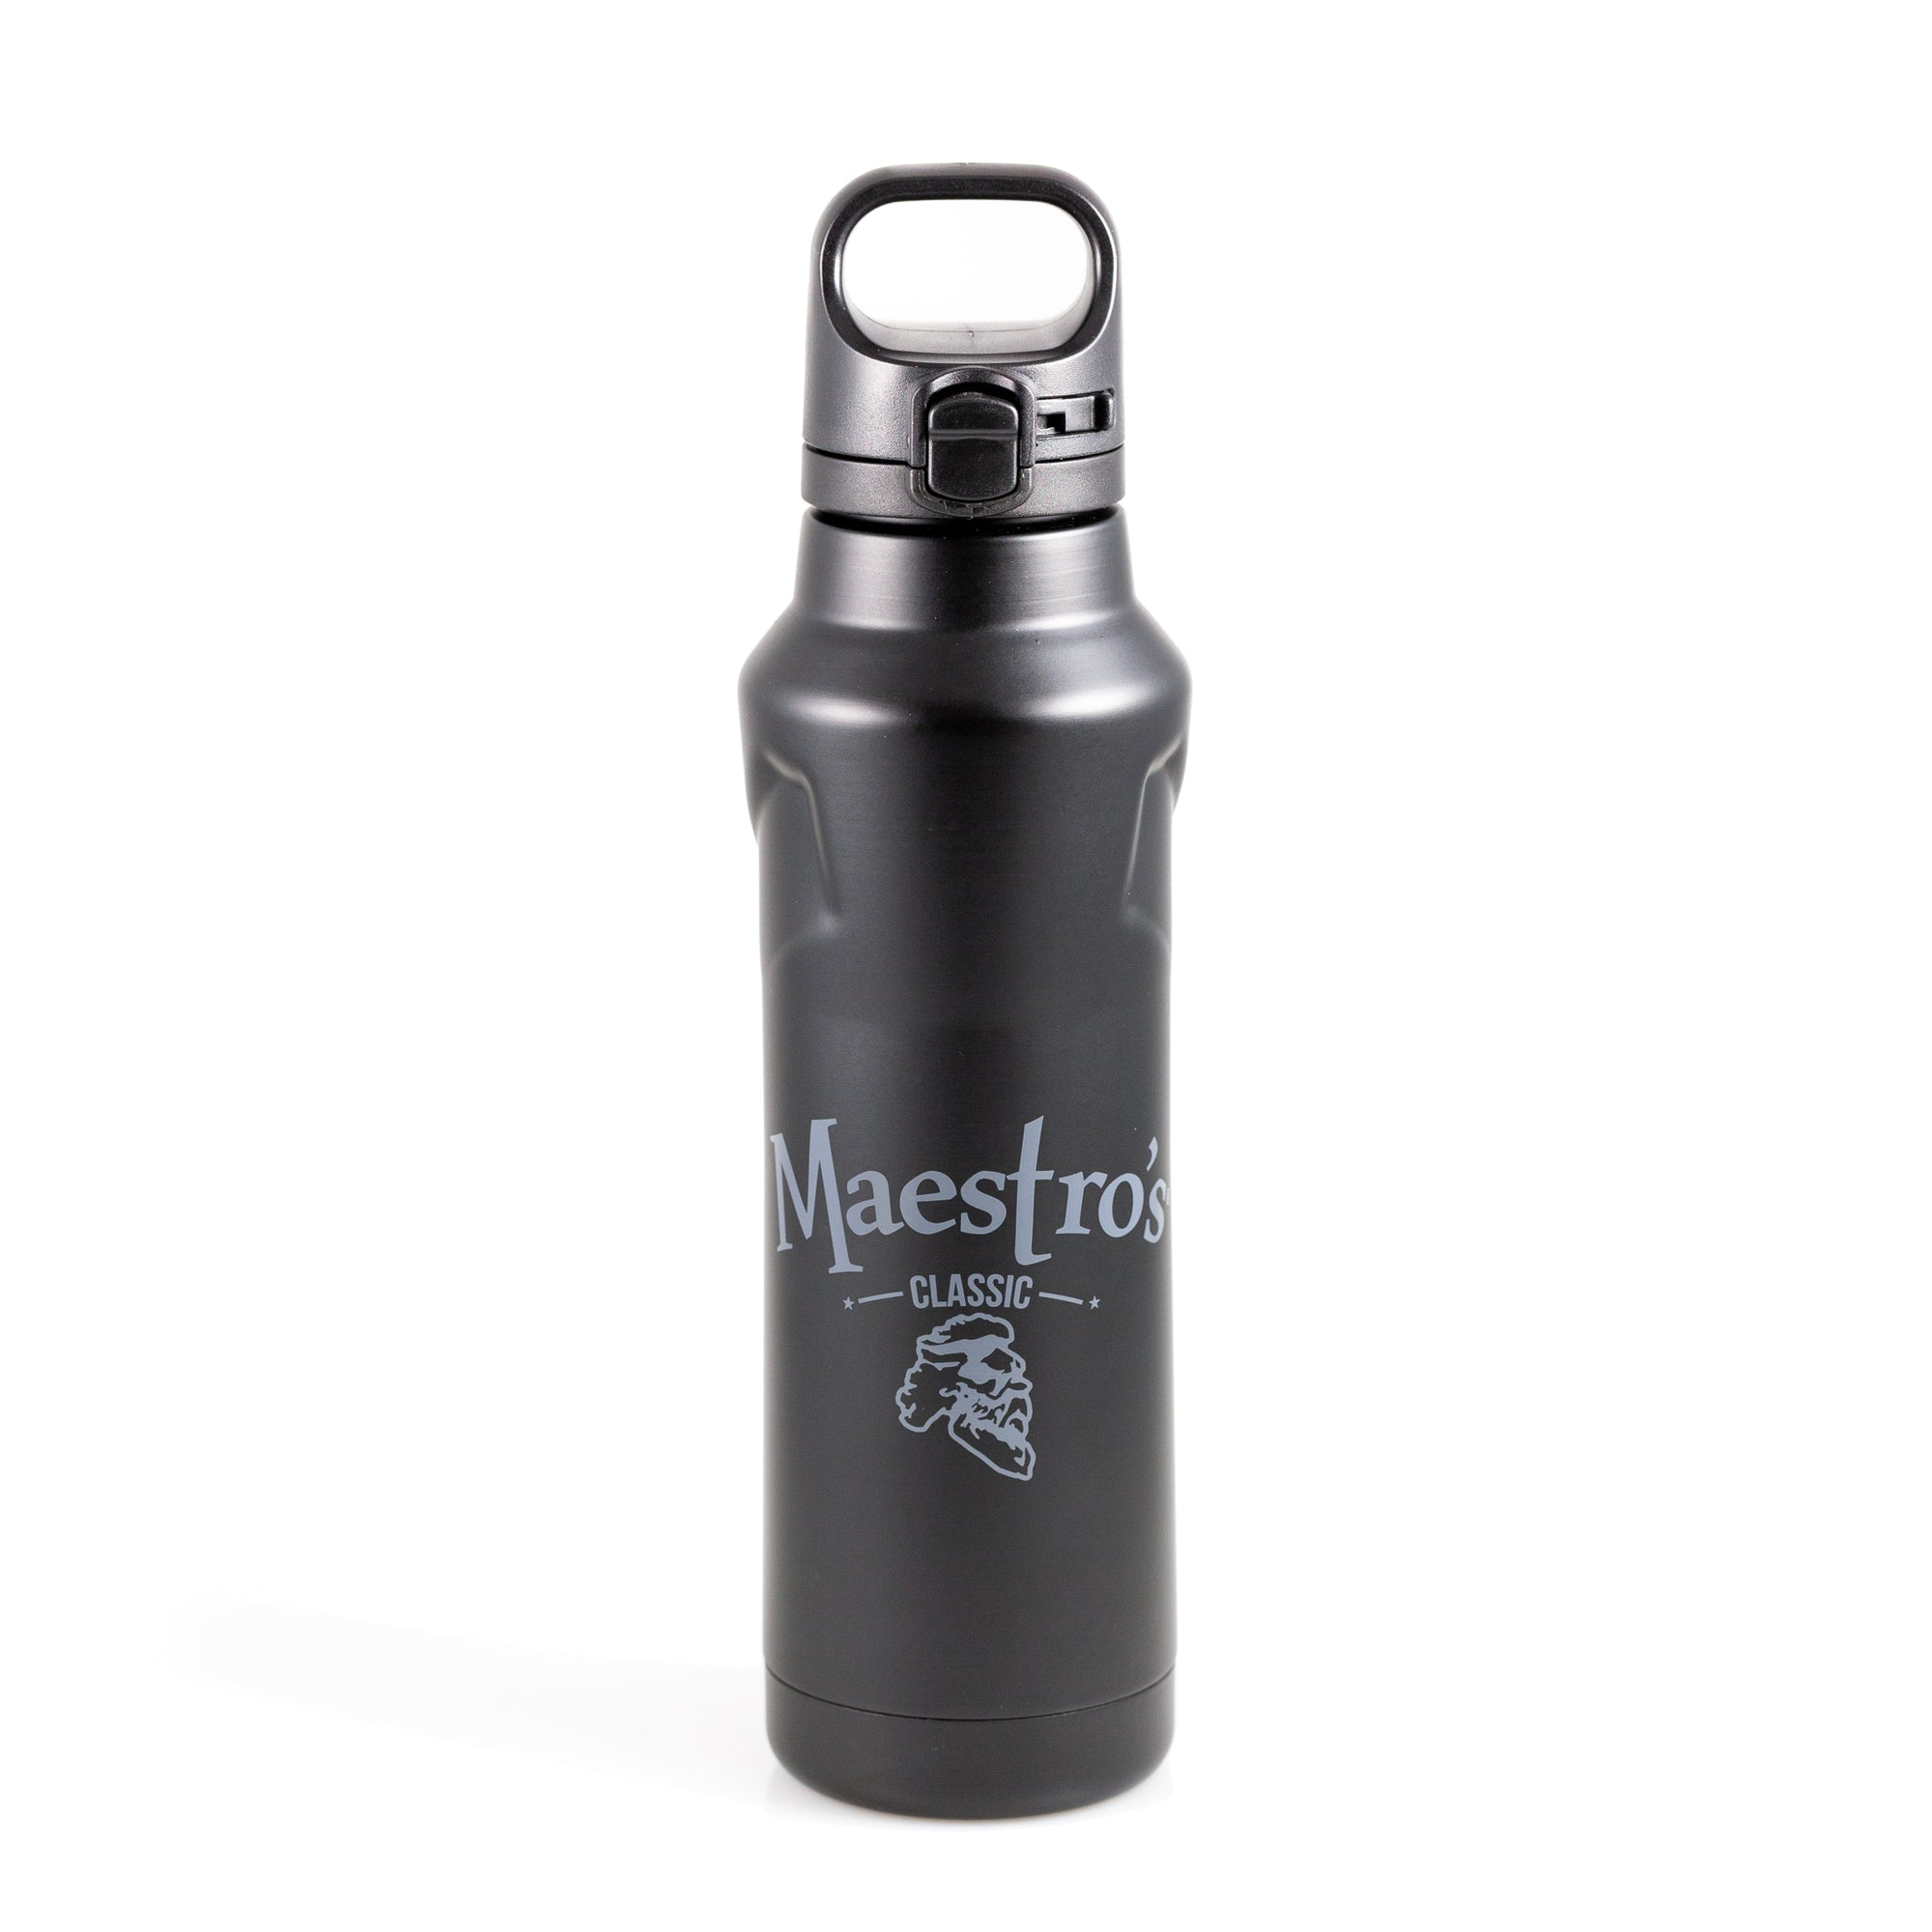 Maestro's Classic Beverage Bottle- Matte Black with Gray Logo